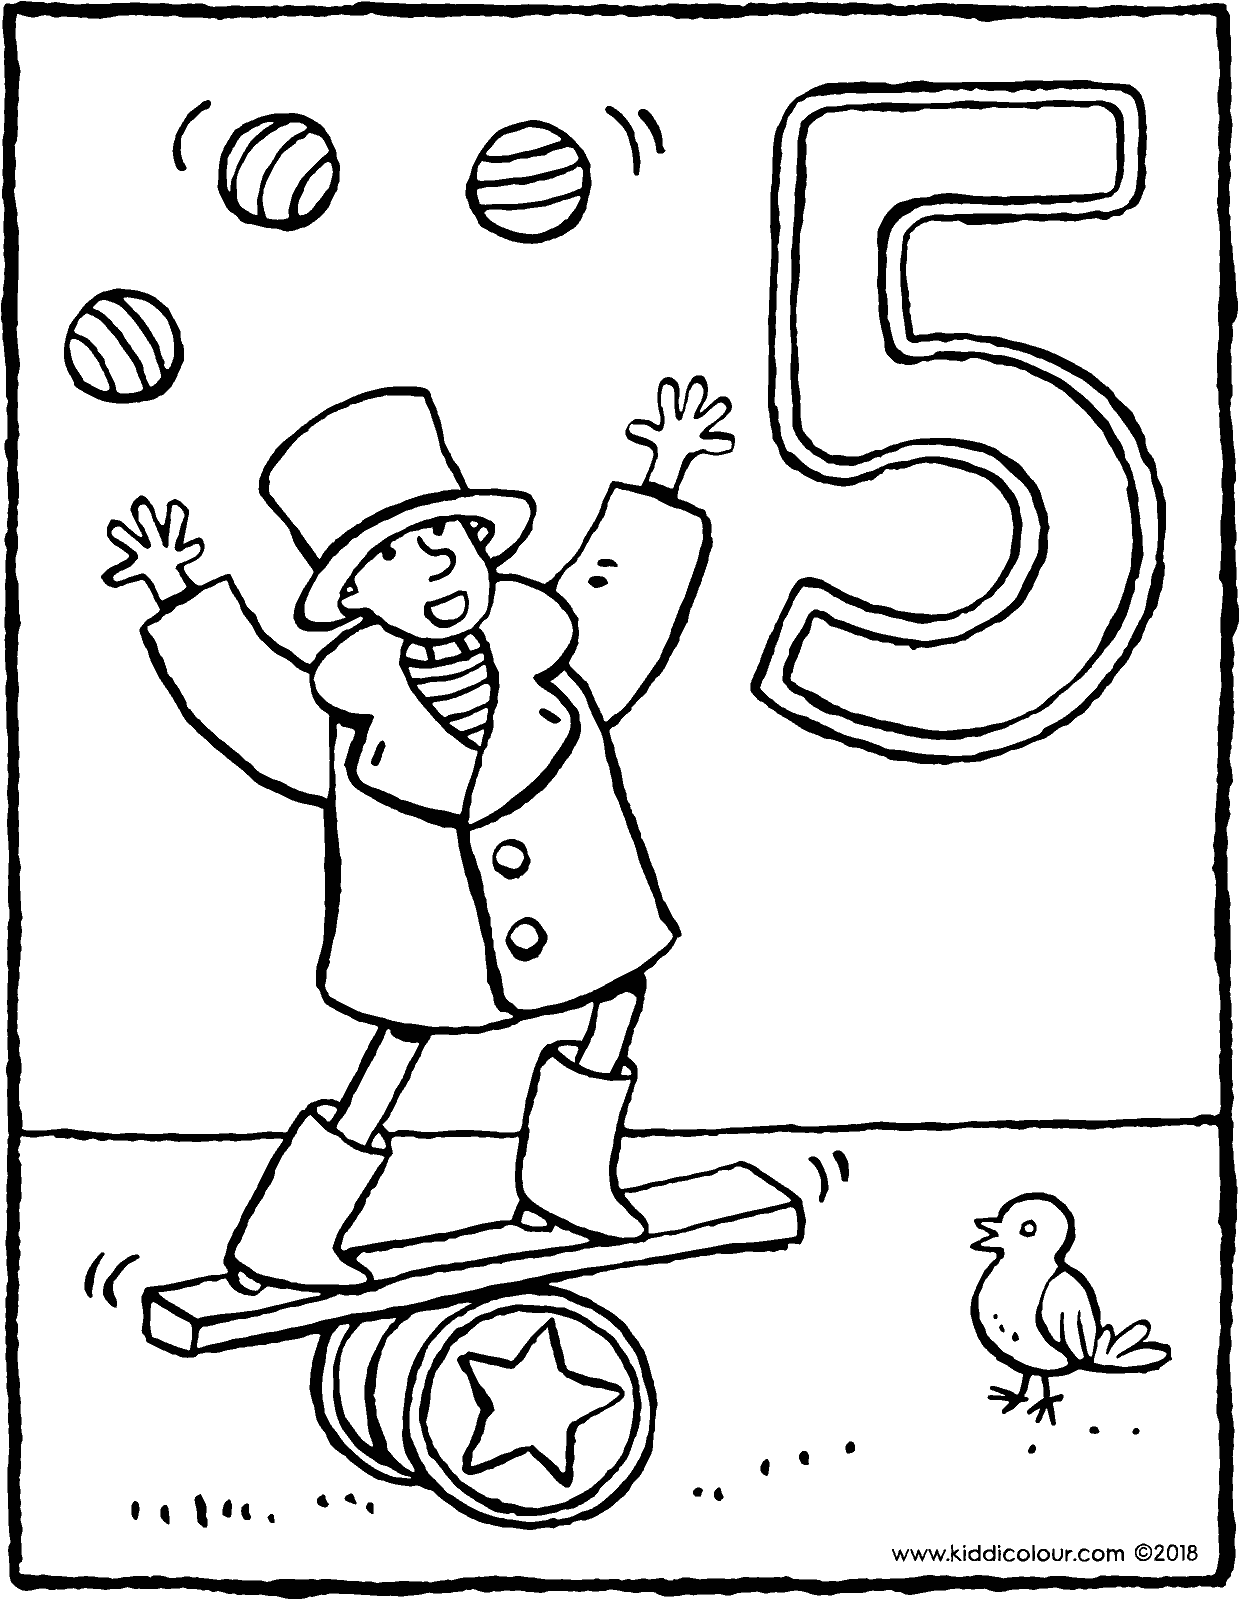 a five-year-old circus artist colouring page drawing picture 01V